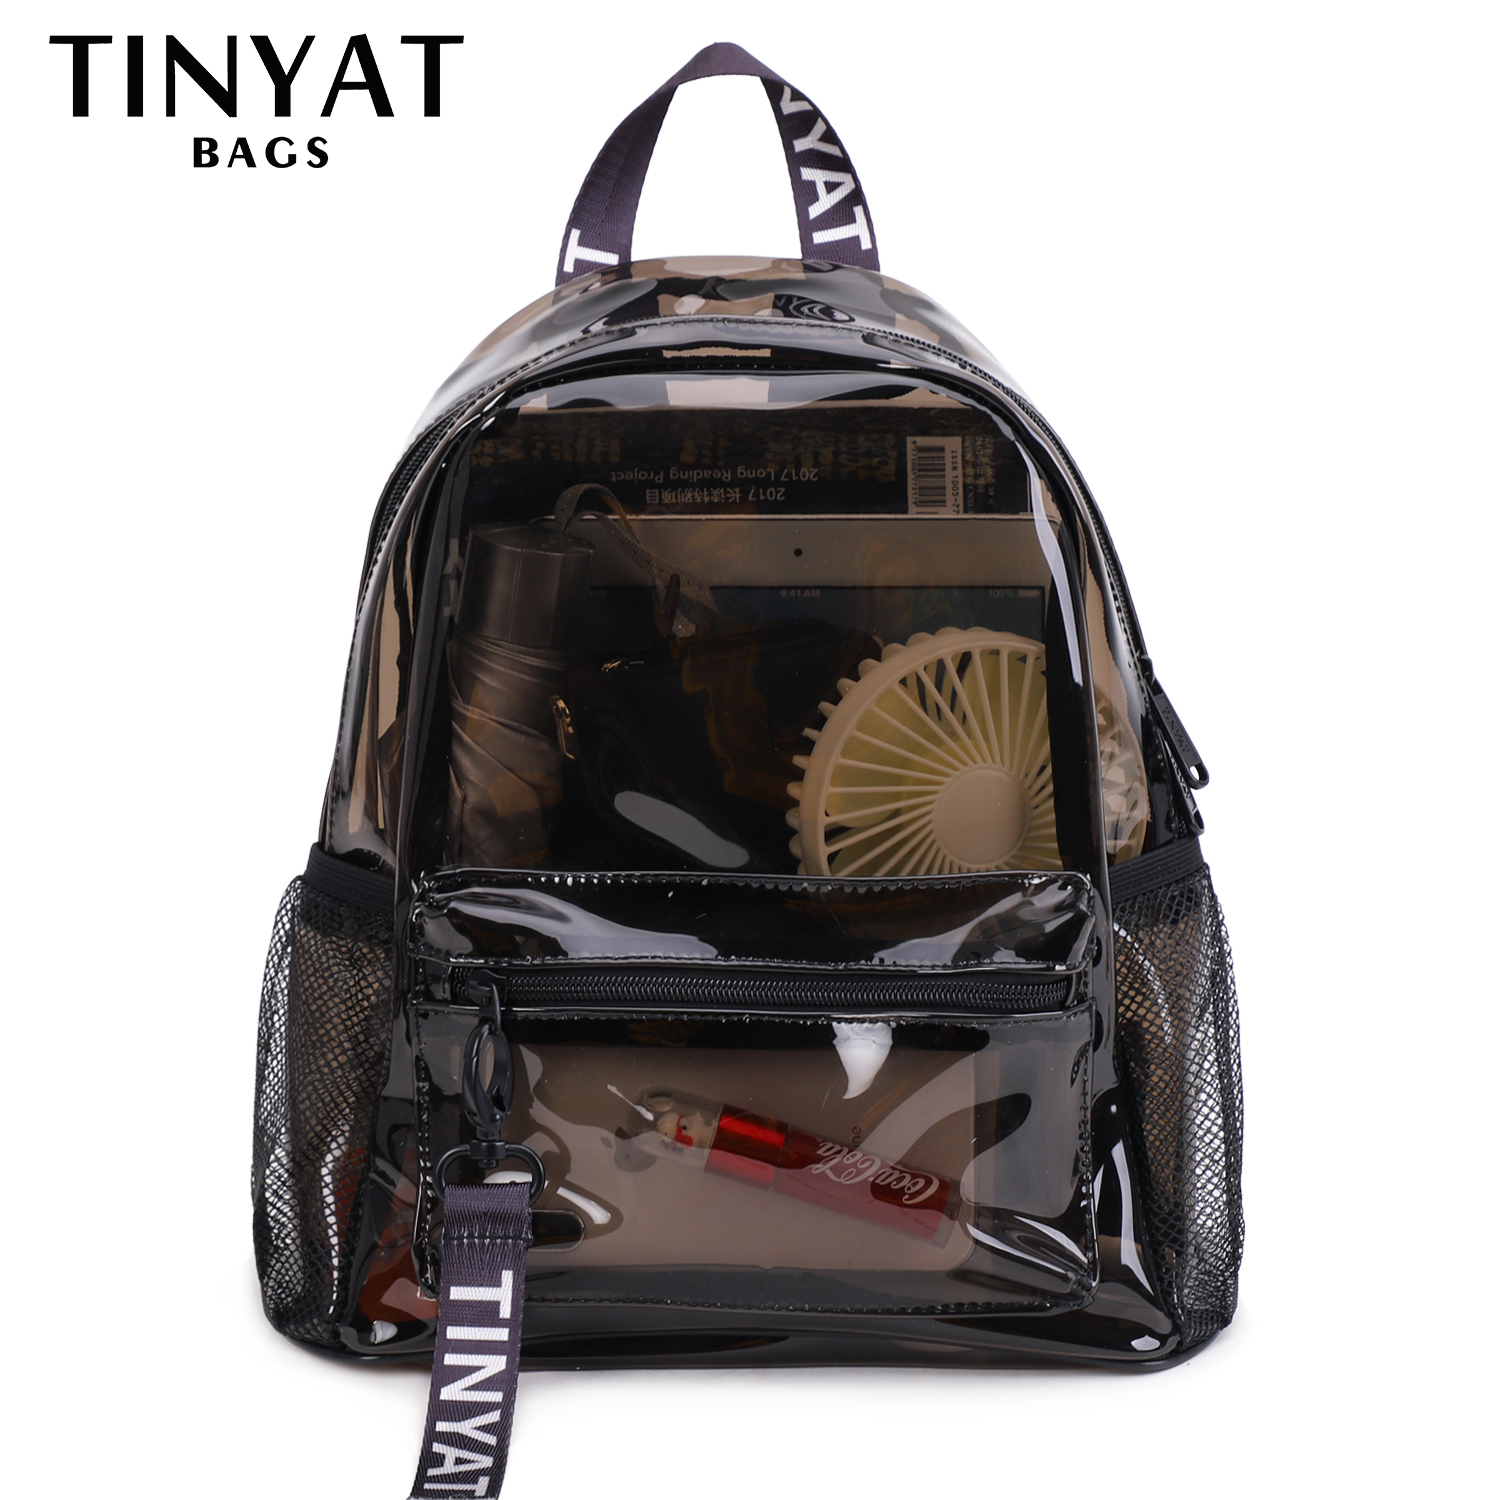 TINYAT Clear PVC Women Backpack Transparent Fashion Solid Backpack Travel School Backpack Bag For Teenage Girls Mochila Children